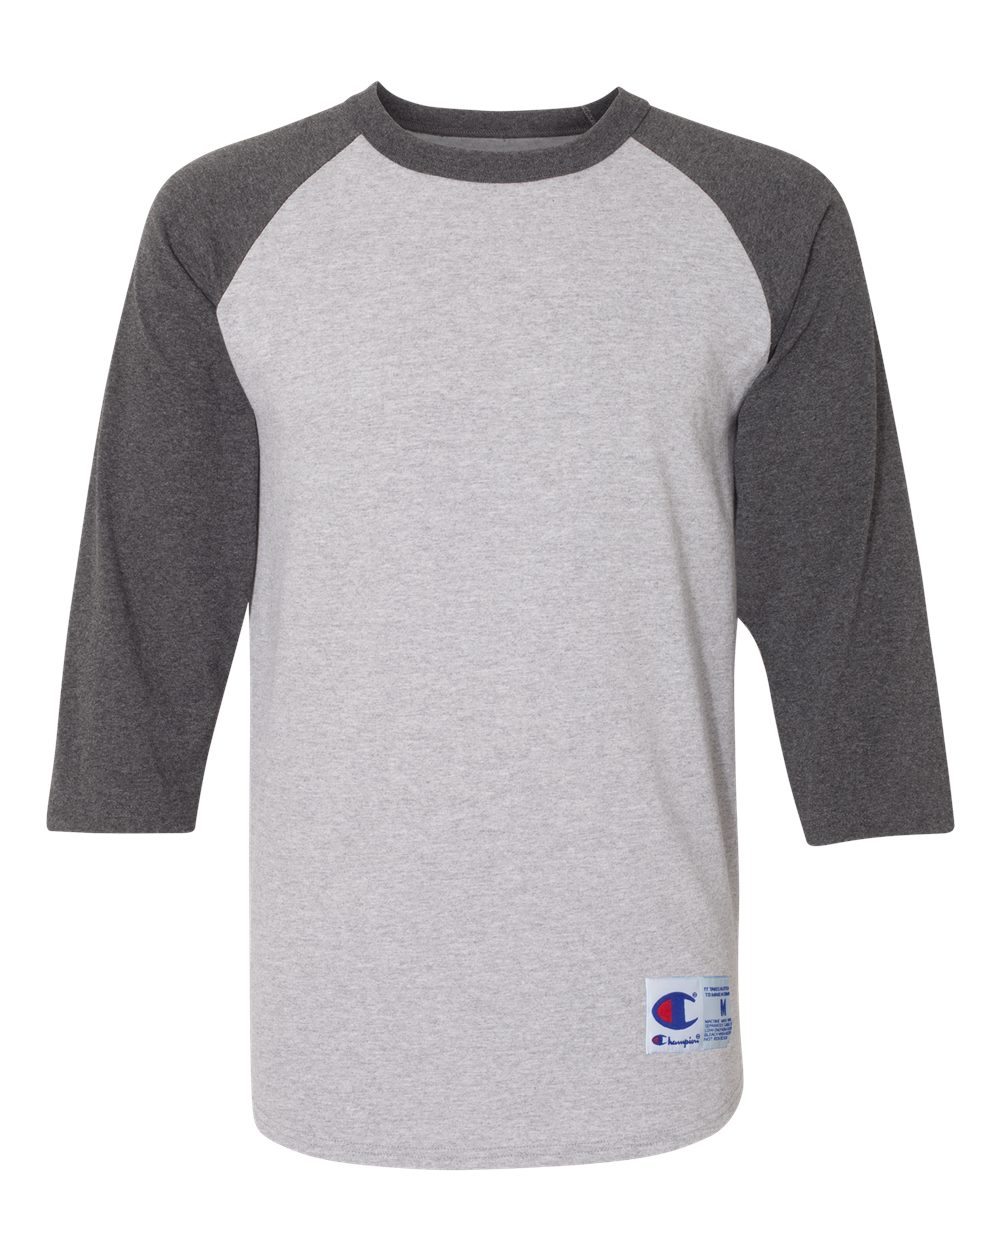 click to view Oxford Grey/ Charcoal Heather